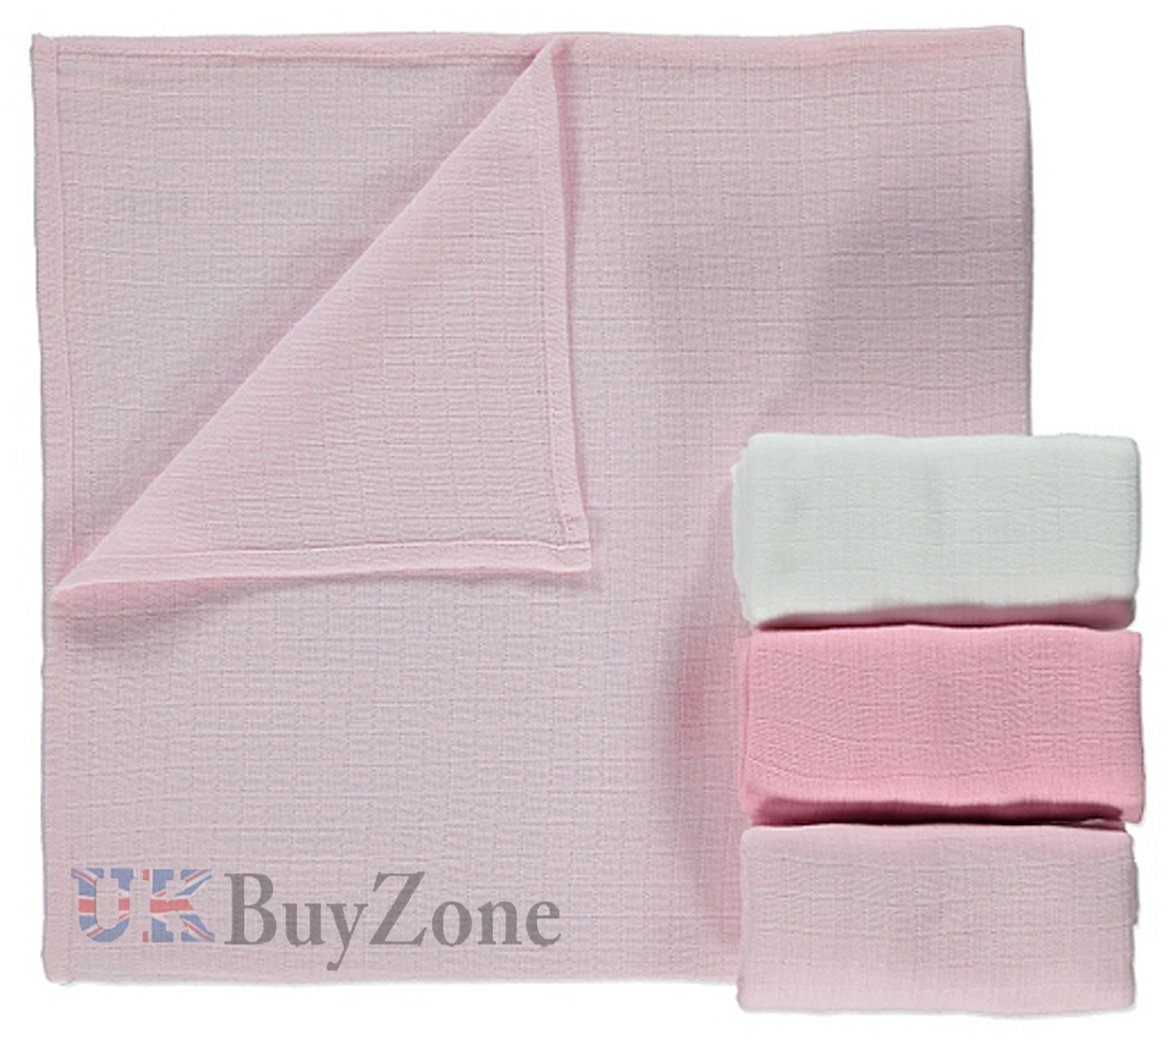 2 Packs of 3, Pink Baby Muslin Squares Cloth 100/% Cotton Reusable Nappy Bibs Wipes Burp Cloths